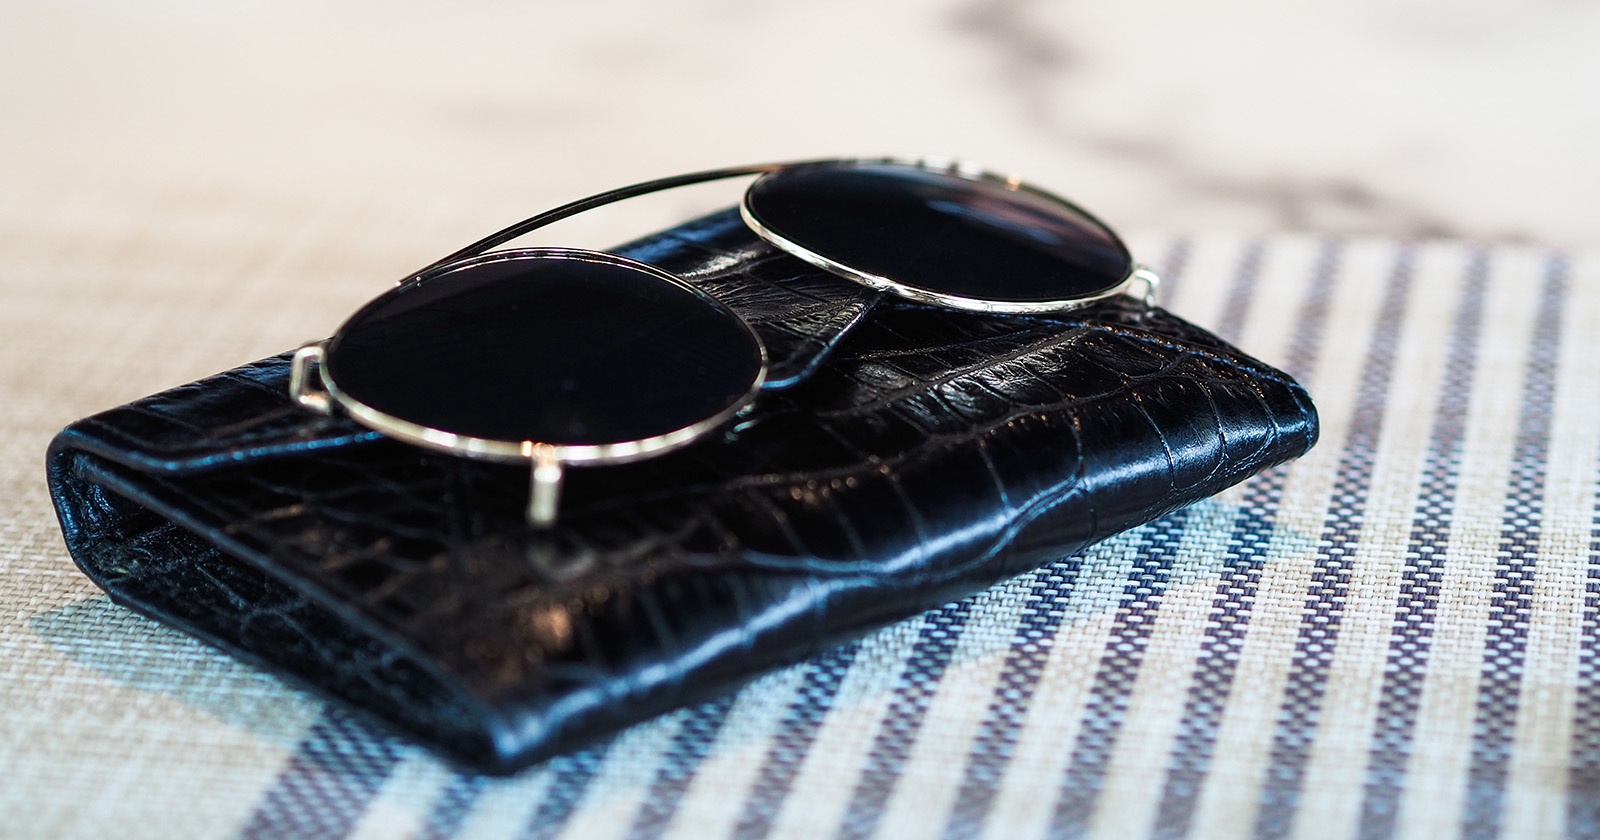 A set of clip-on sunglasses on a black case